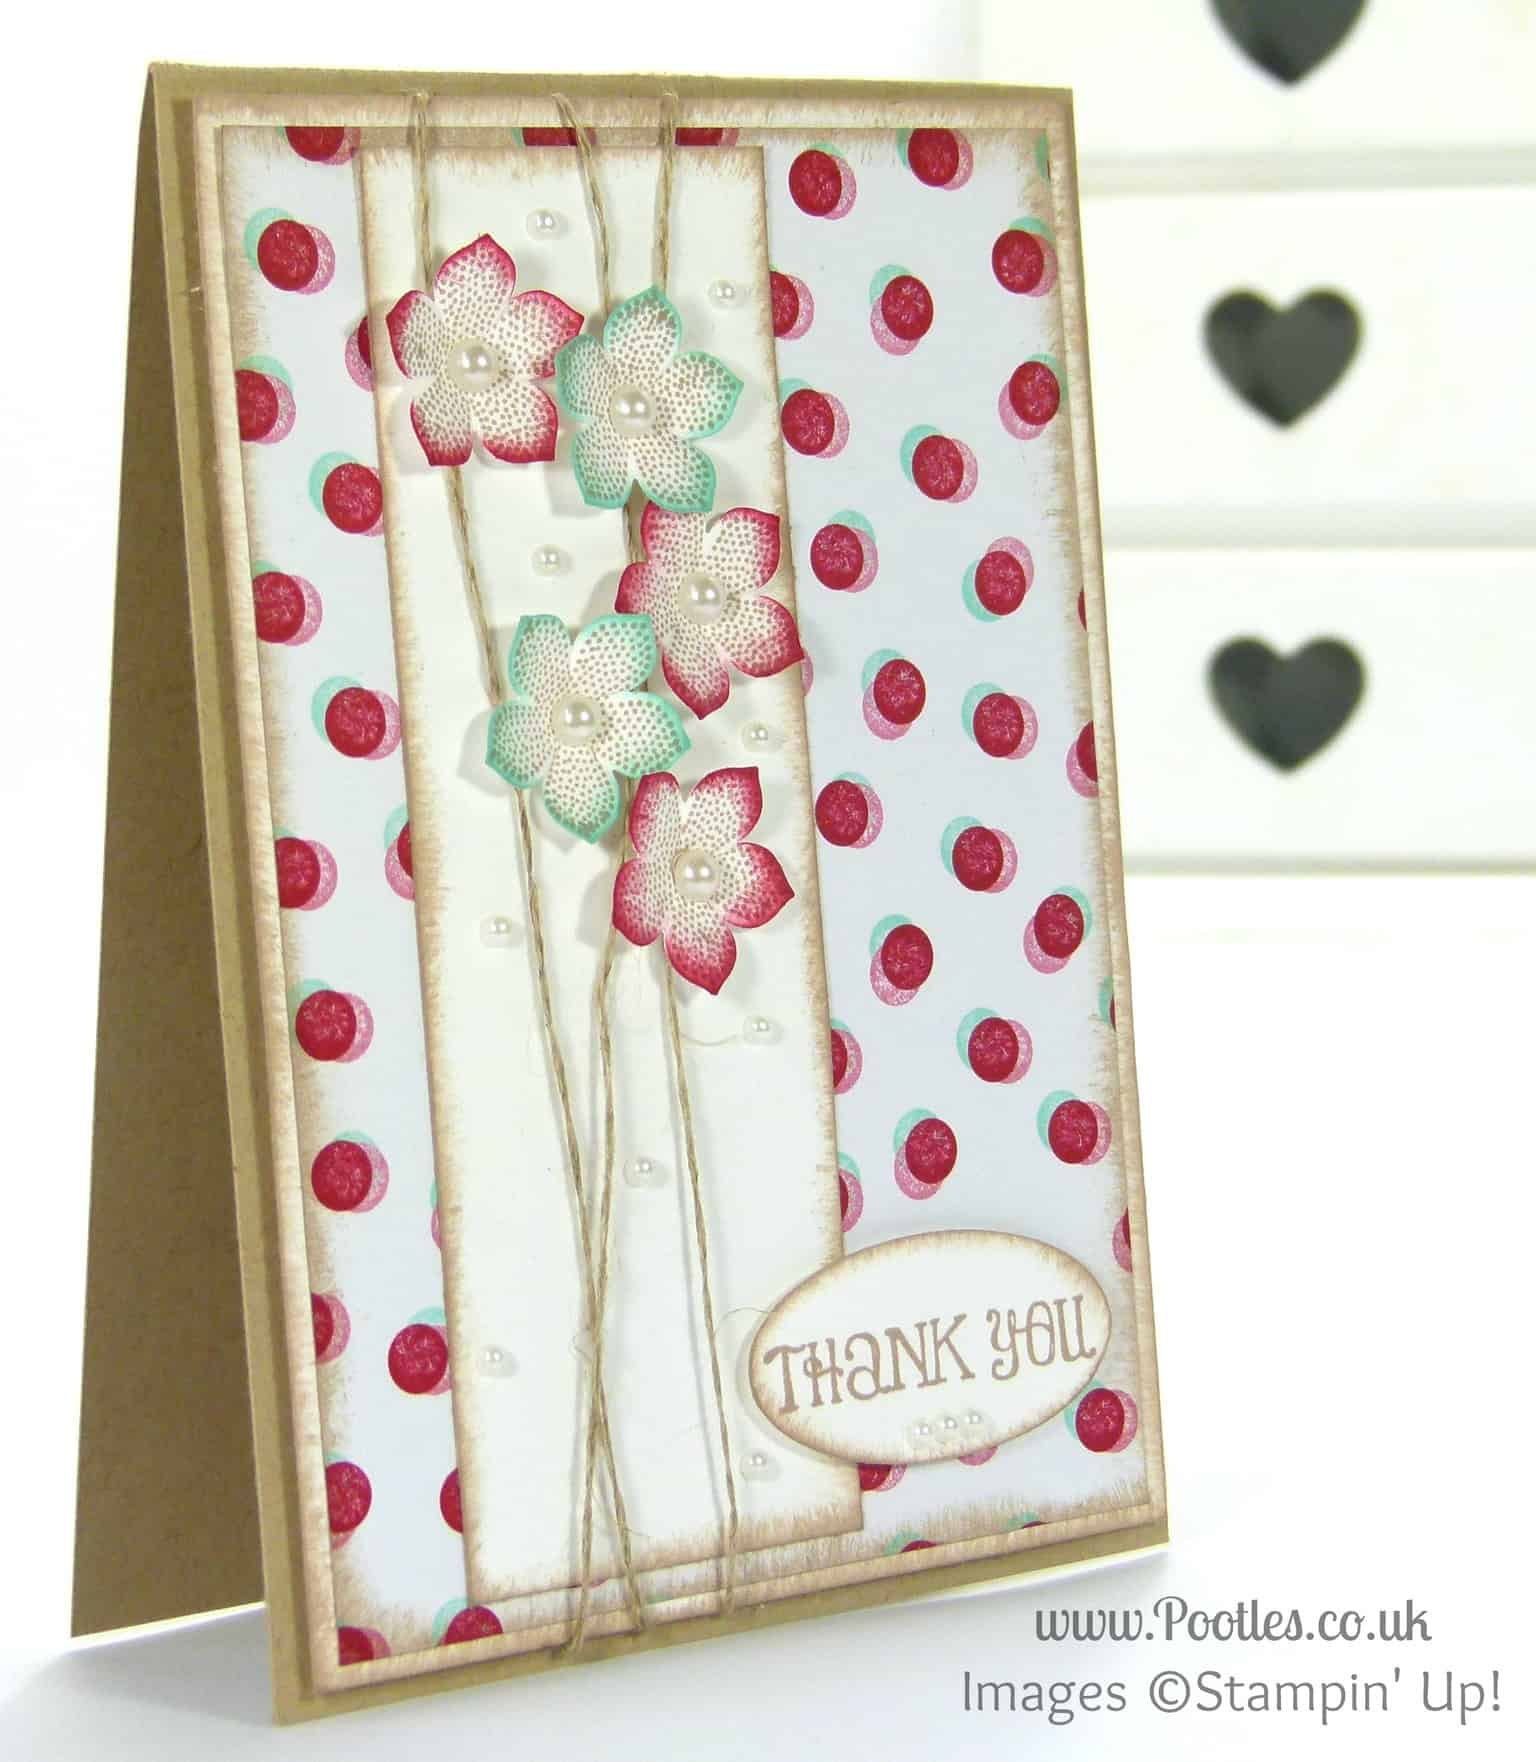 Stampin' Up! UK Demonstrator Pootles - Pretty Petite Fresh Prints Floral Card